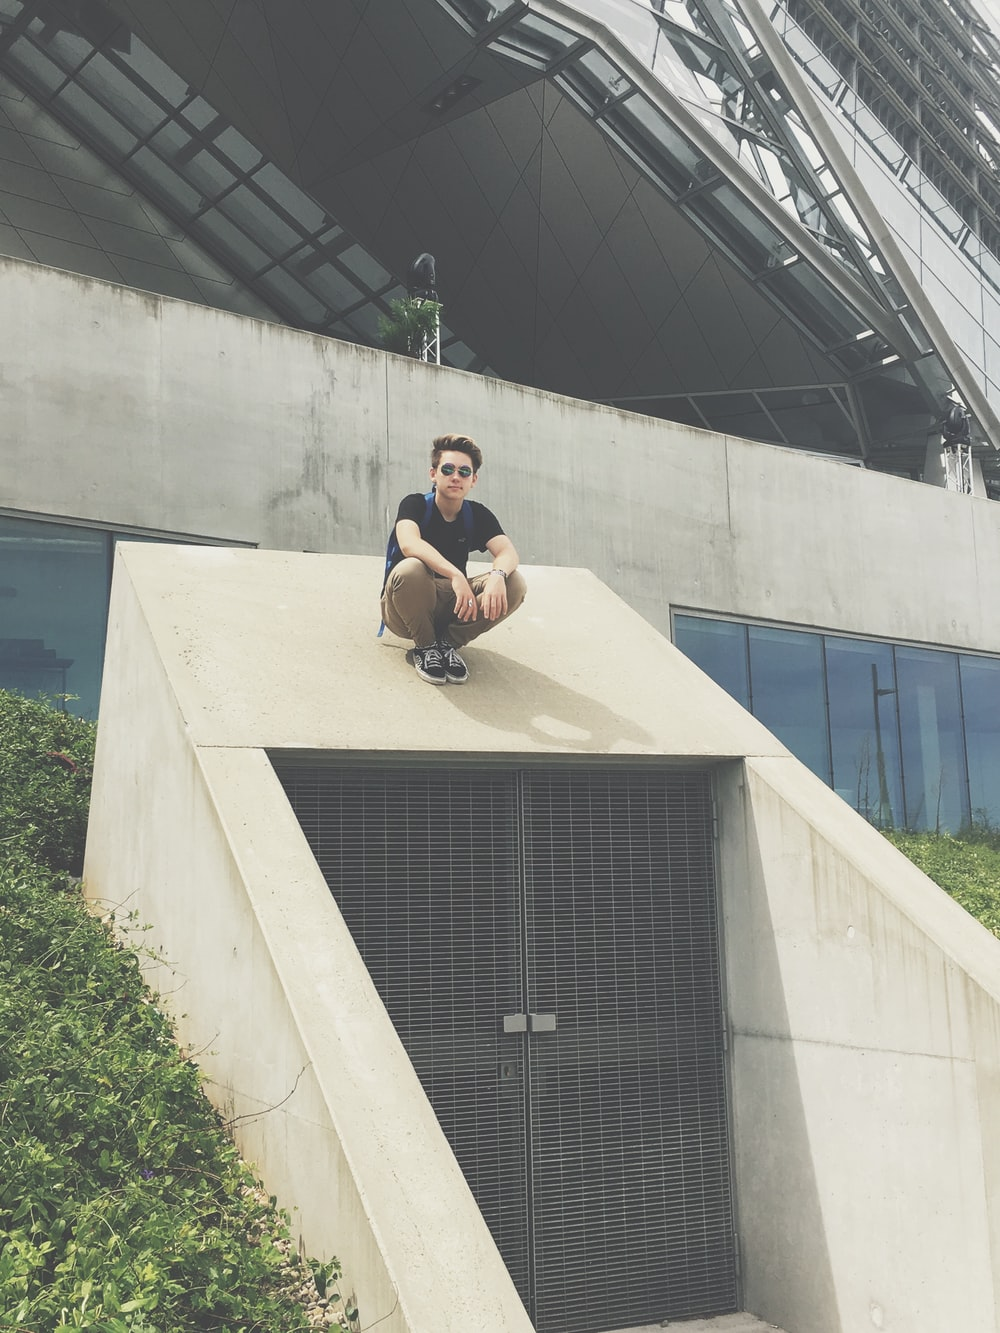 man siting on top of building entrance